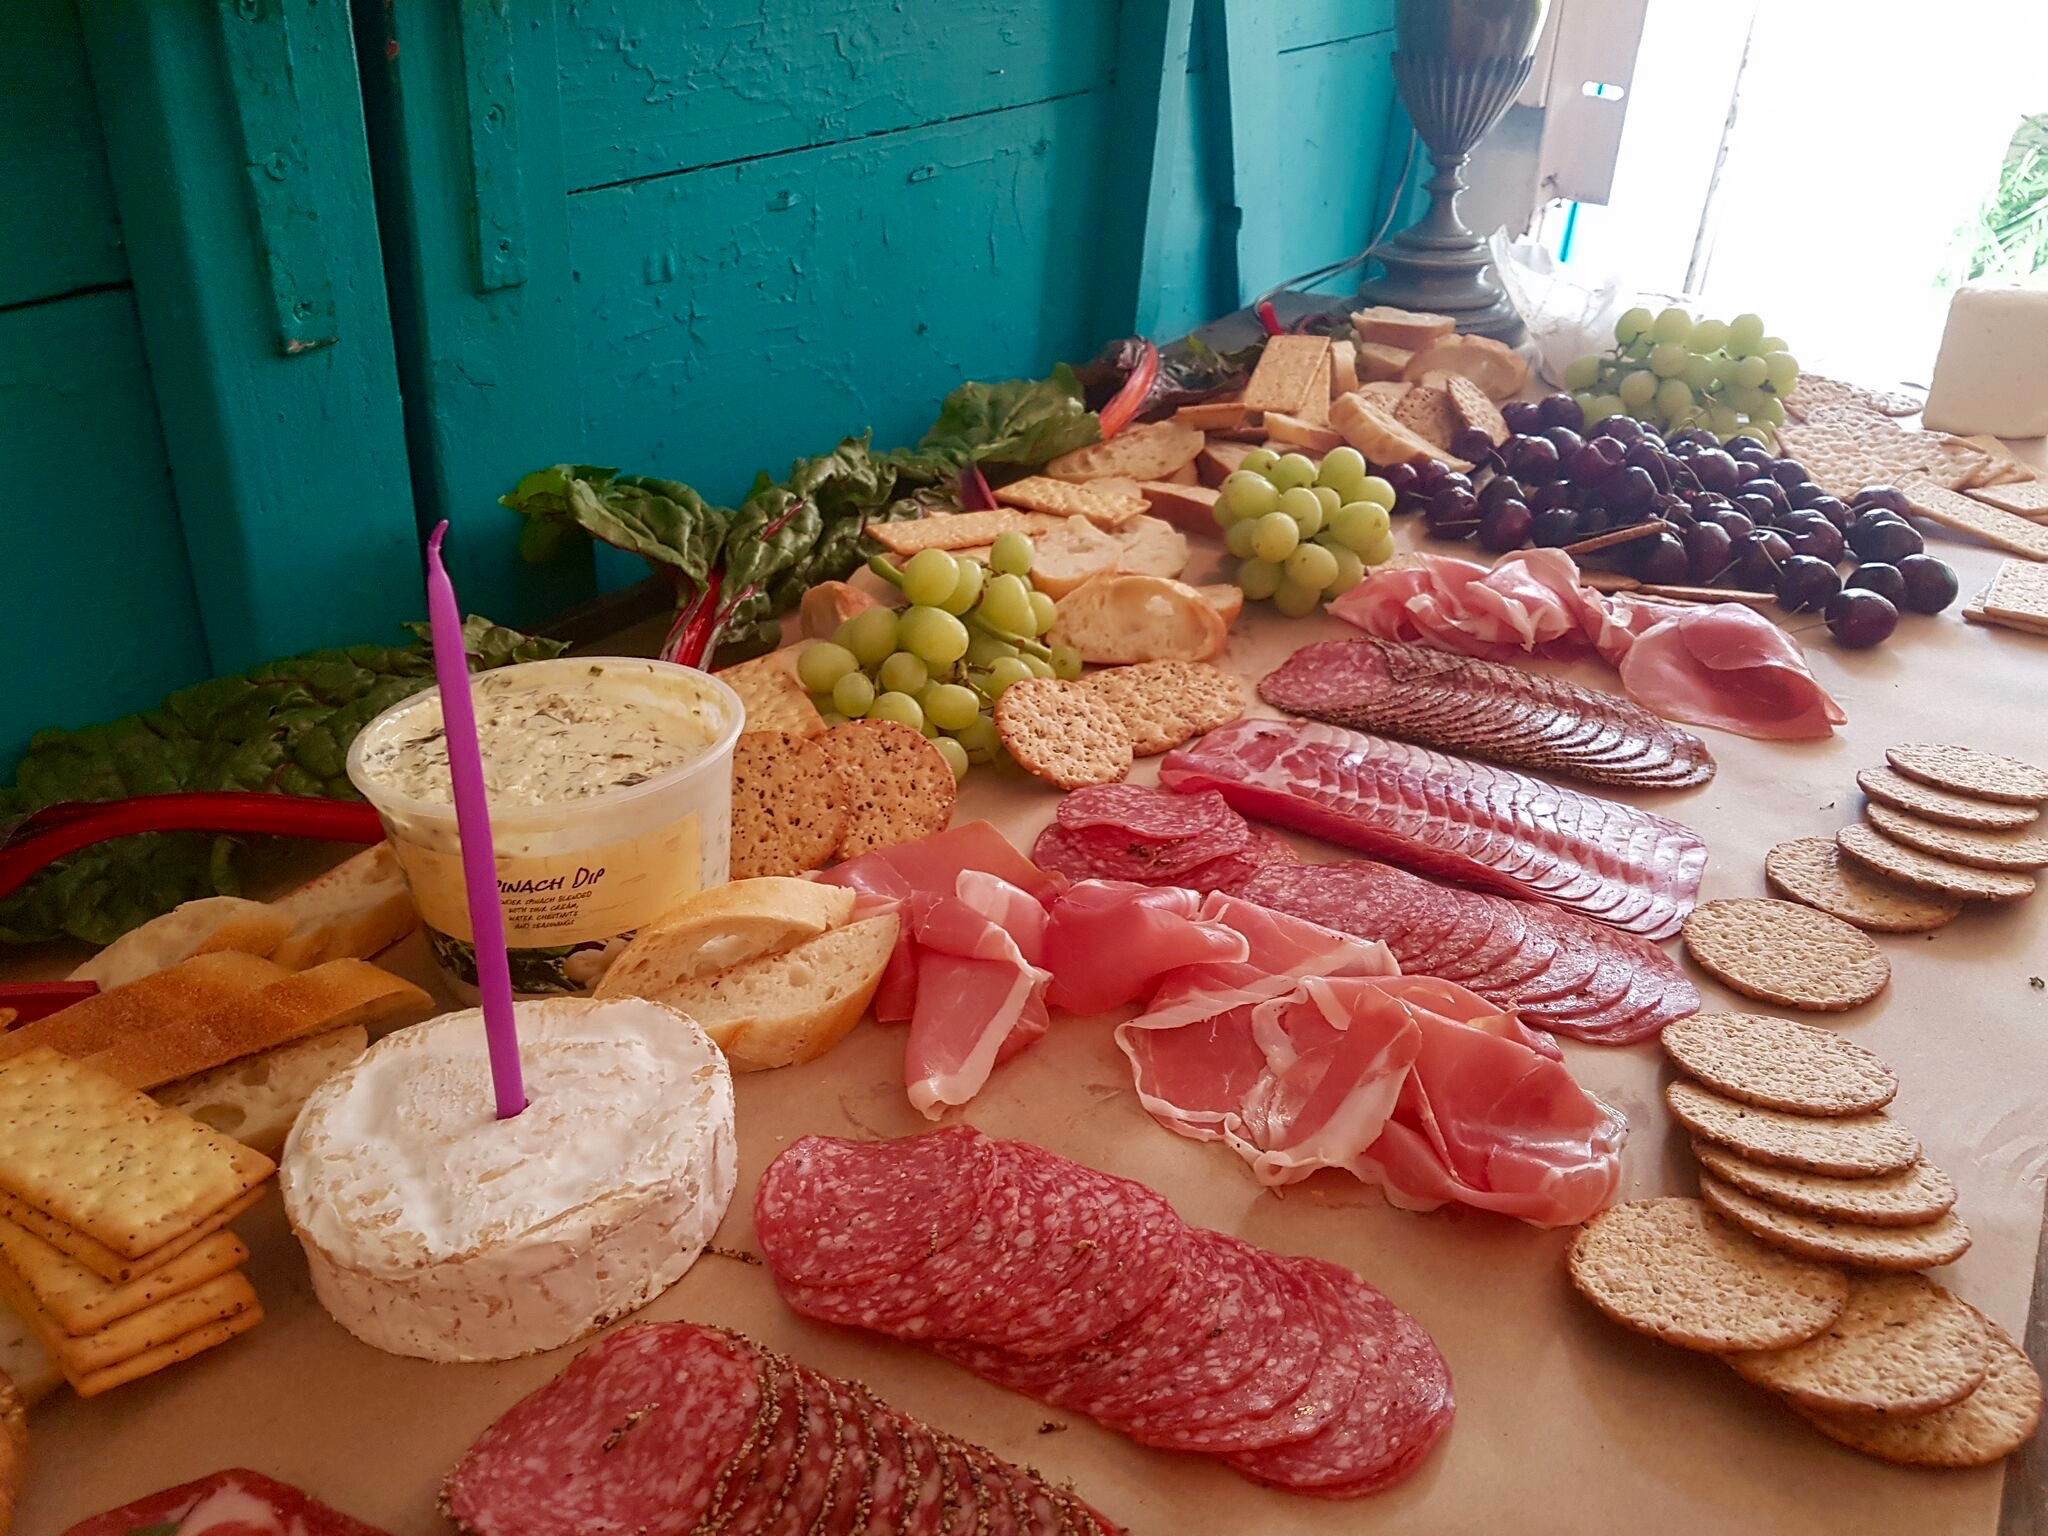 Shahirah's charcuterie & cheese dream // Concept by Shahirah